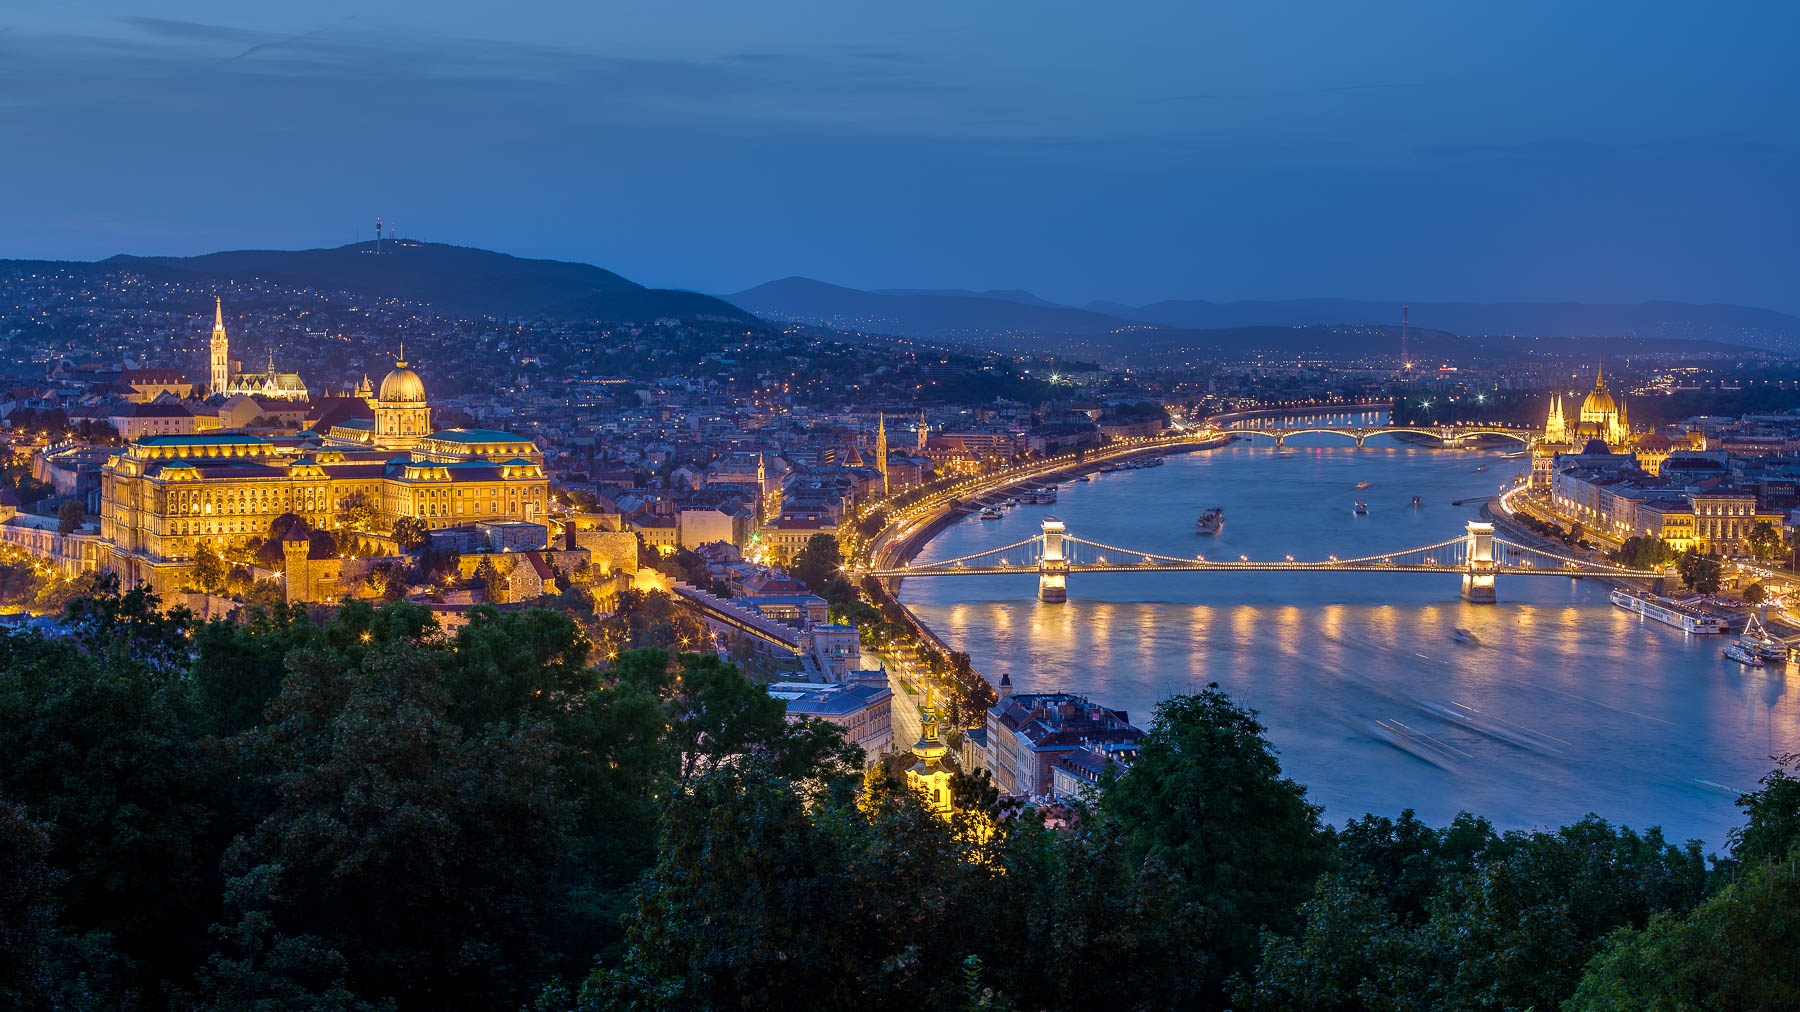 Personal photography tours in Budapest